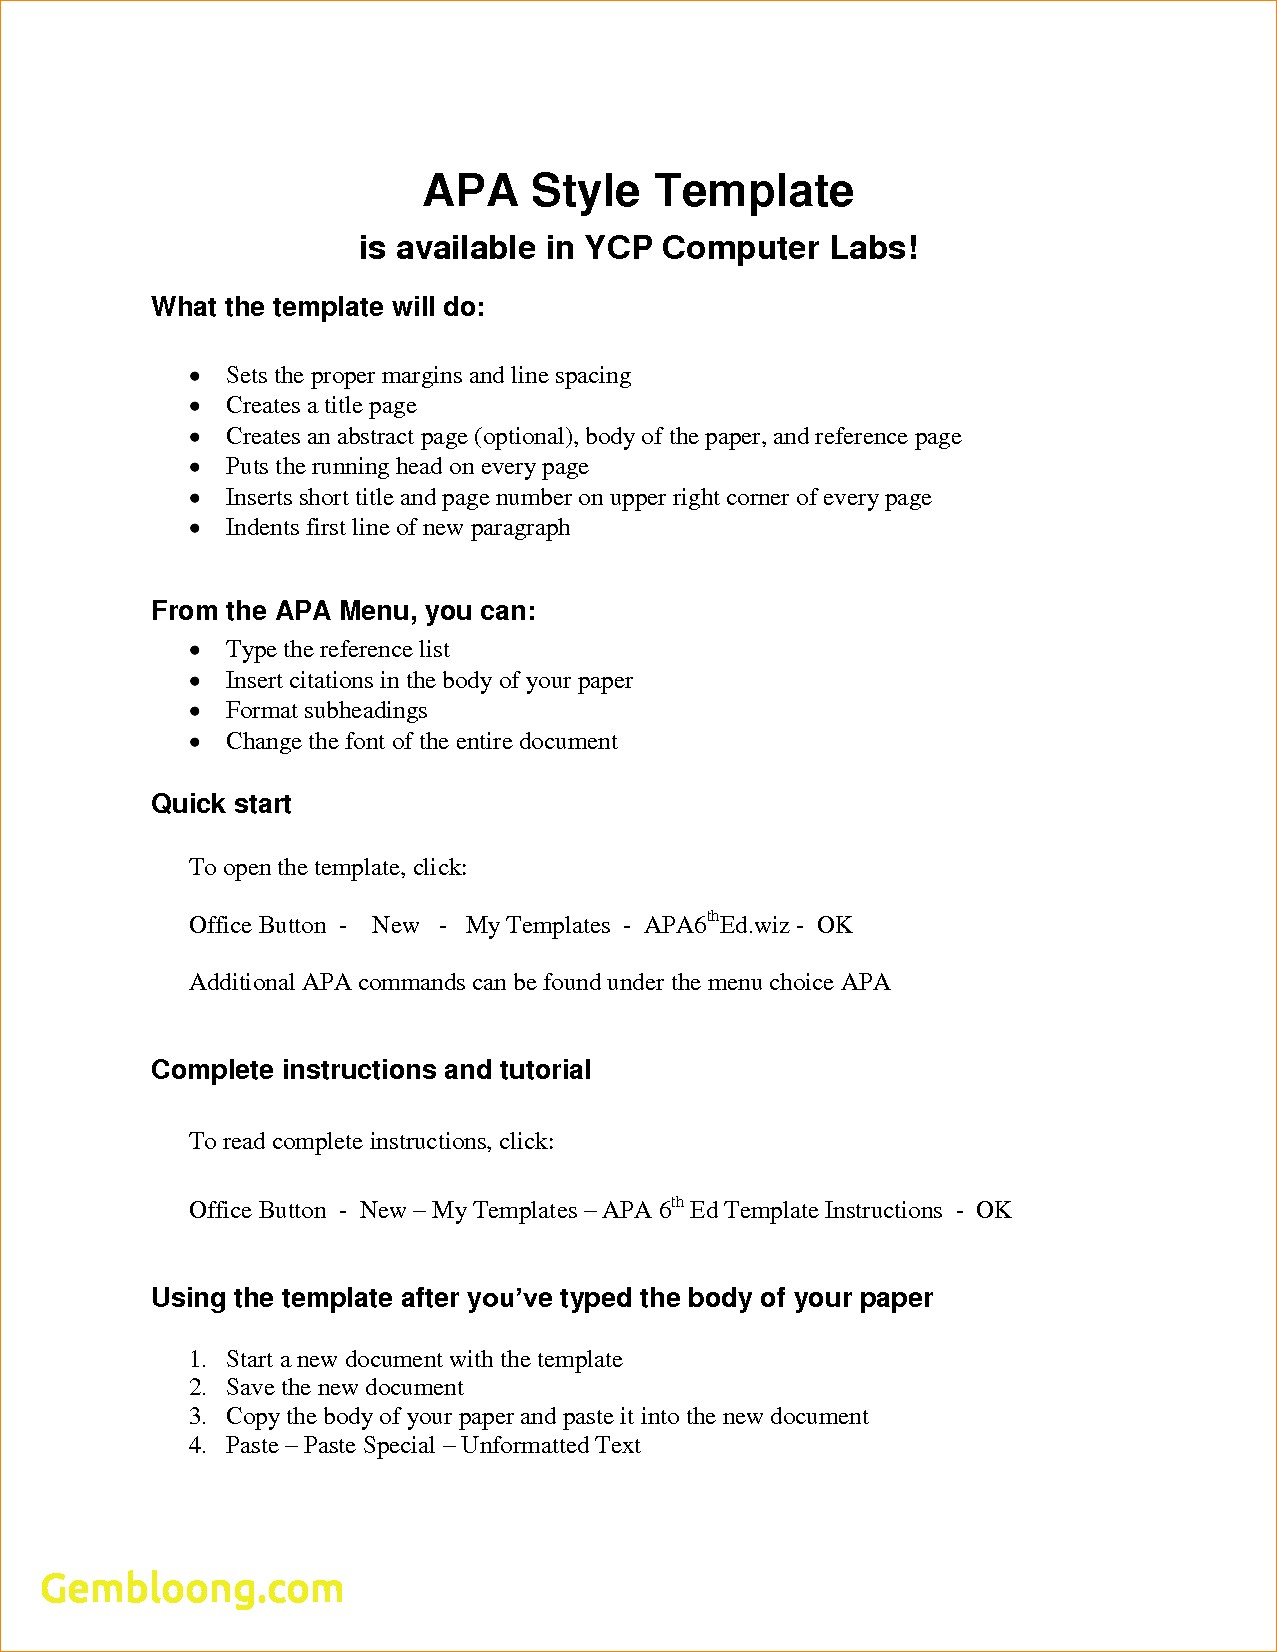 008 Research Paper Apa Template Fresh Buy Custom Essays Cheap Tornemark Dagskole Format Of Example Cover Page For Unique Style Sample Title Full